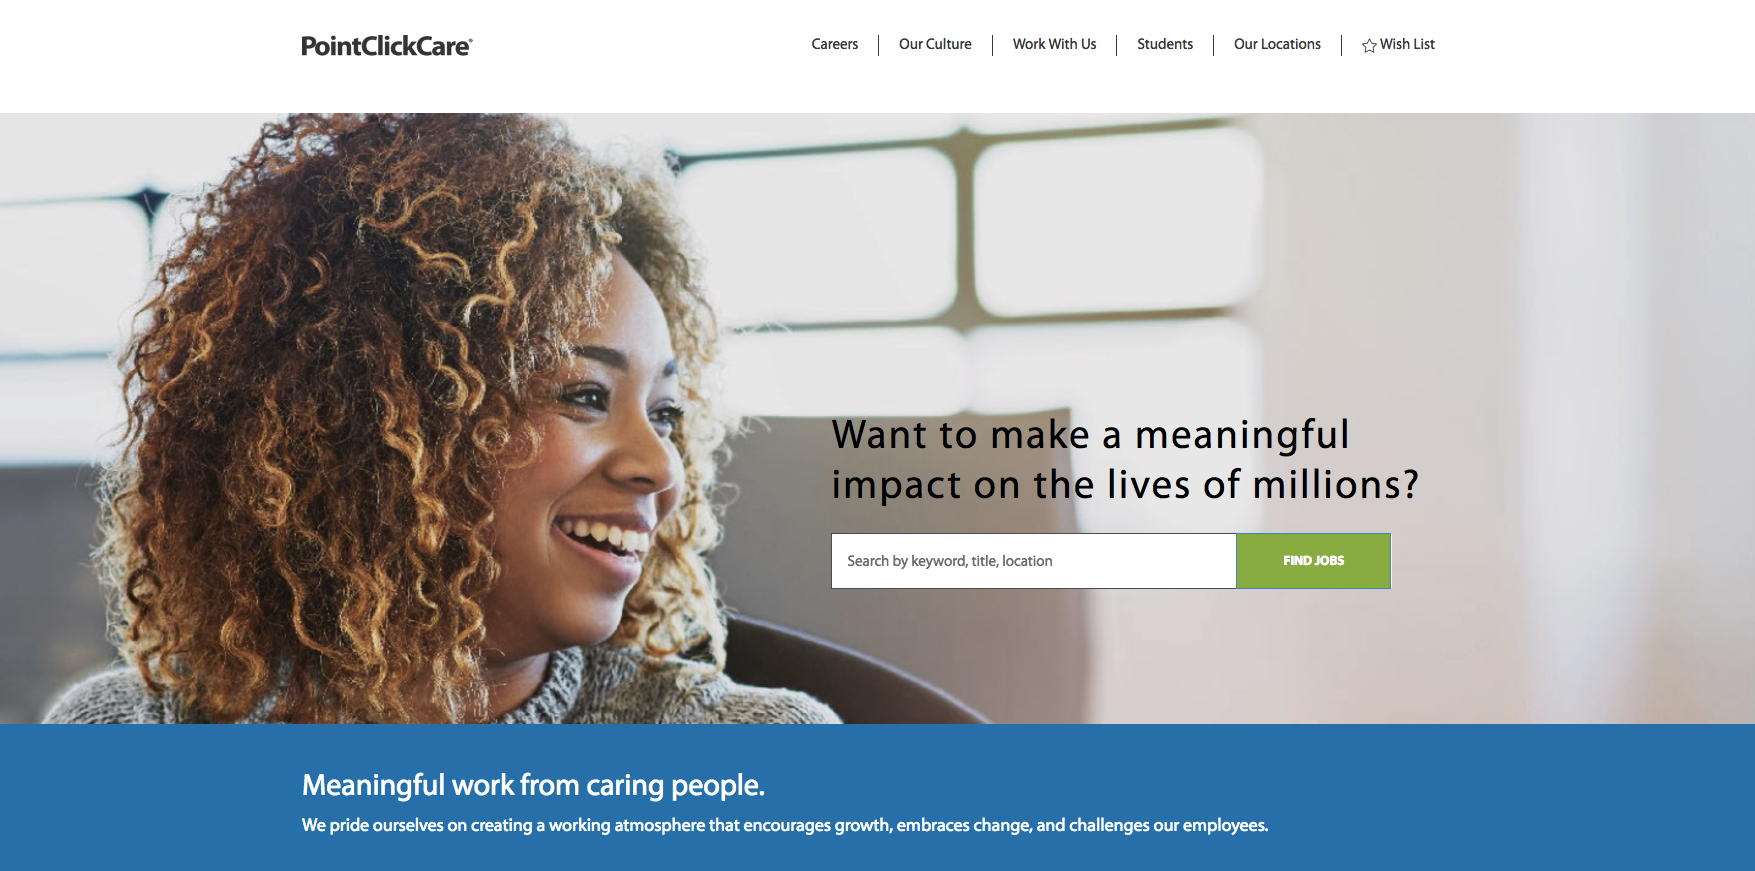 PointClickCare's career site powered by Phenom People